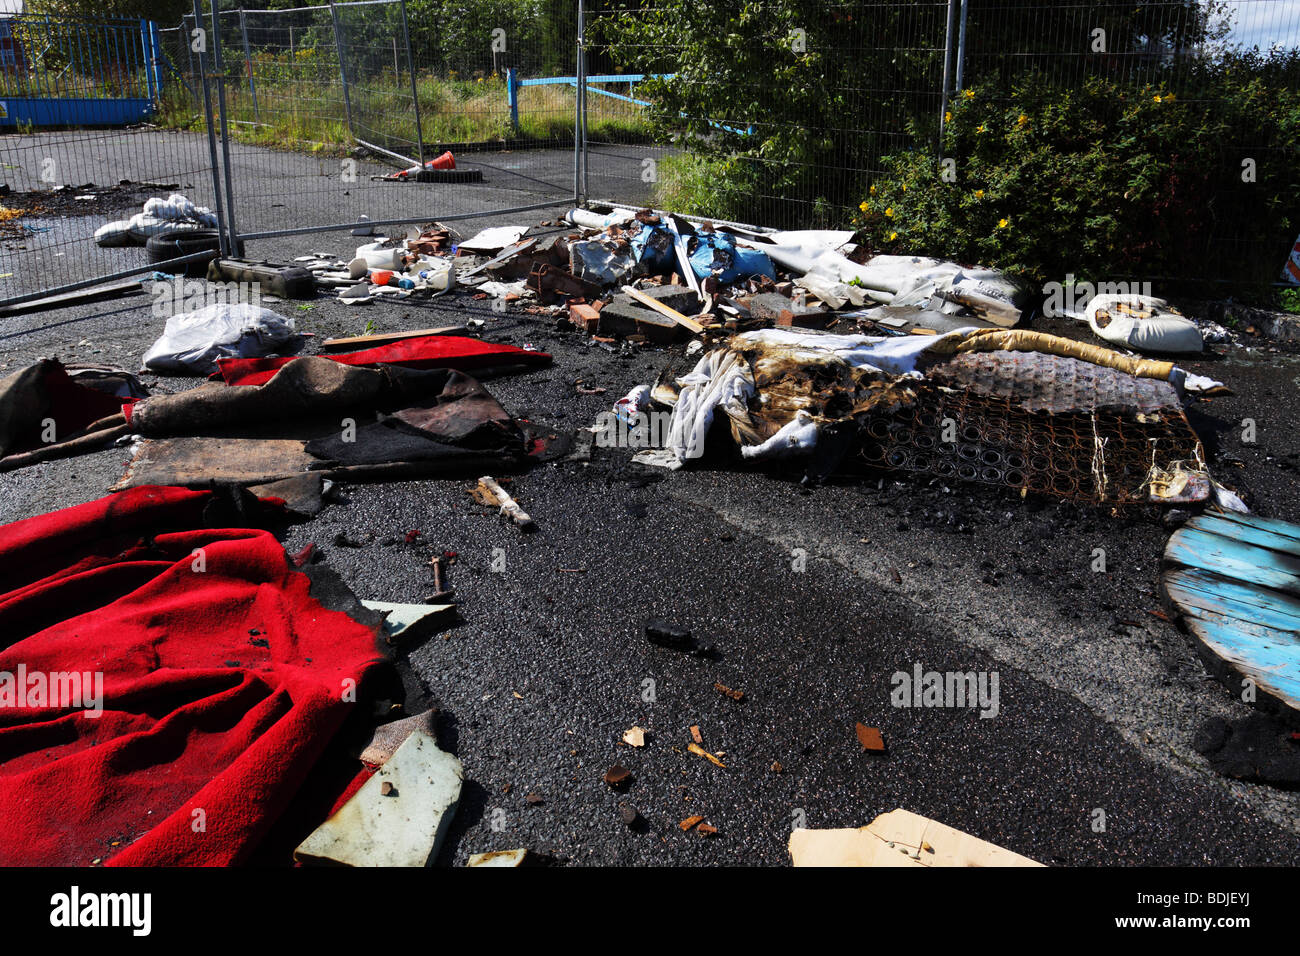 Rubbish illegally dumped on urban waste ground near Wolverhampton city centre - Stock Image